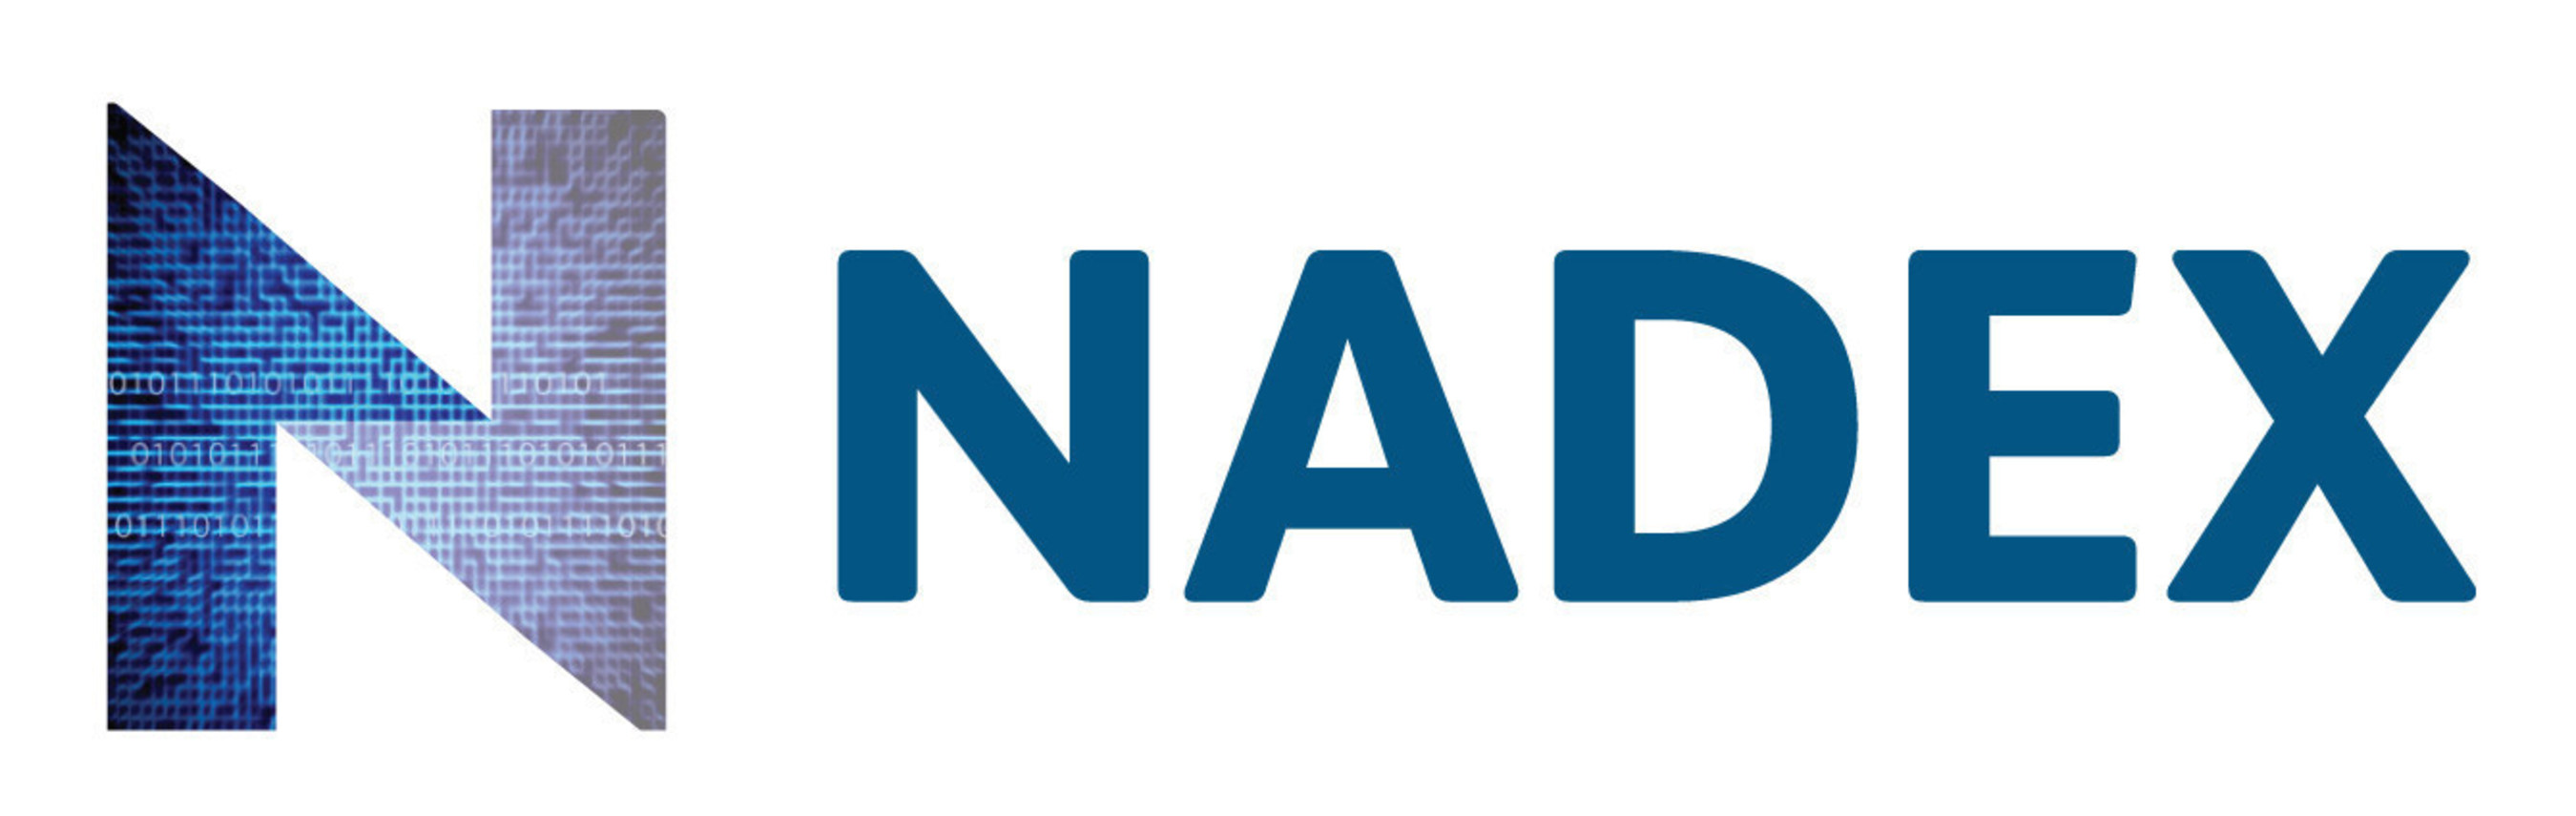 Nadex is the first and largest binary options exchange in North America, offering simplified contracts on the ...